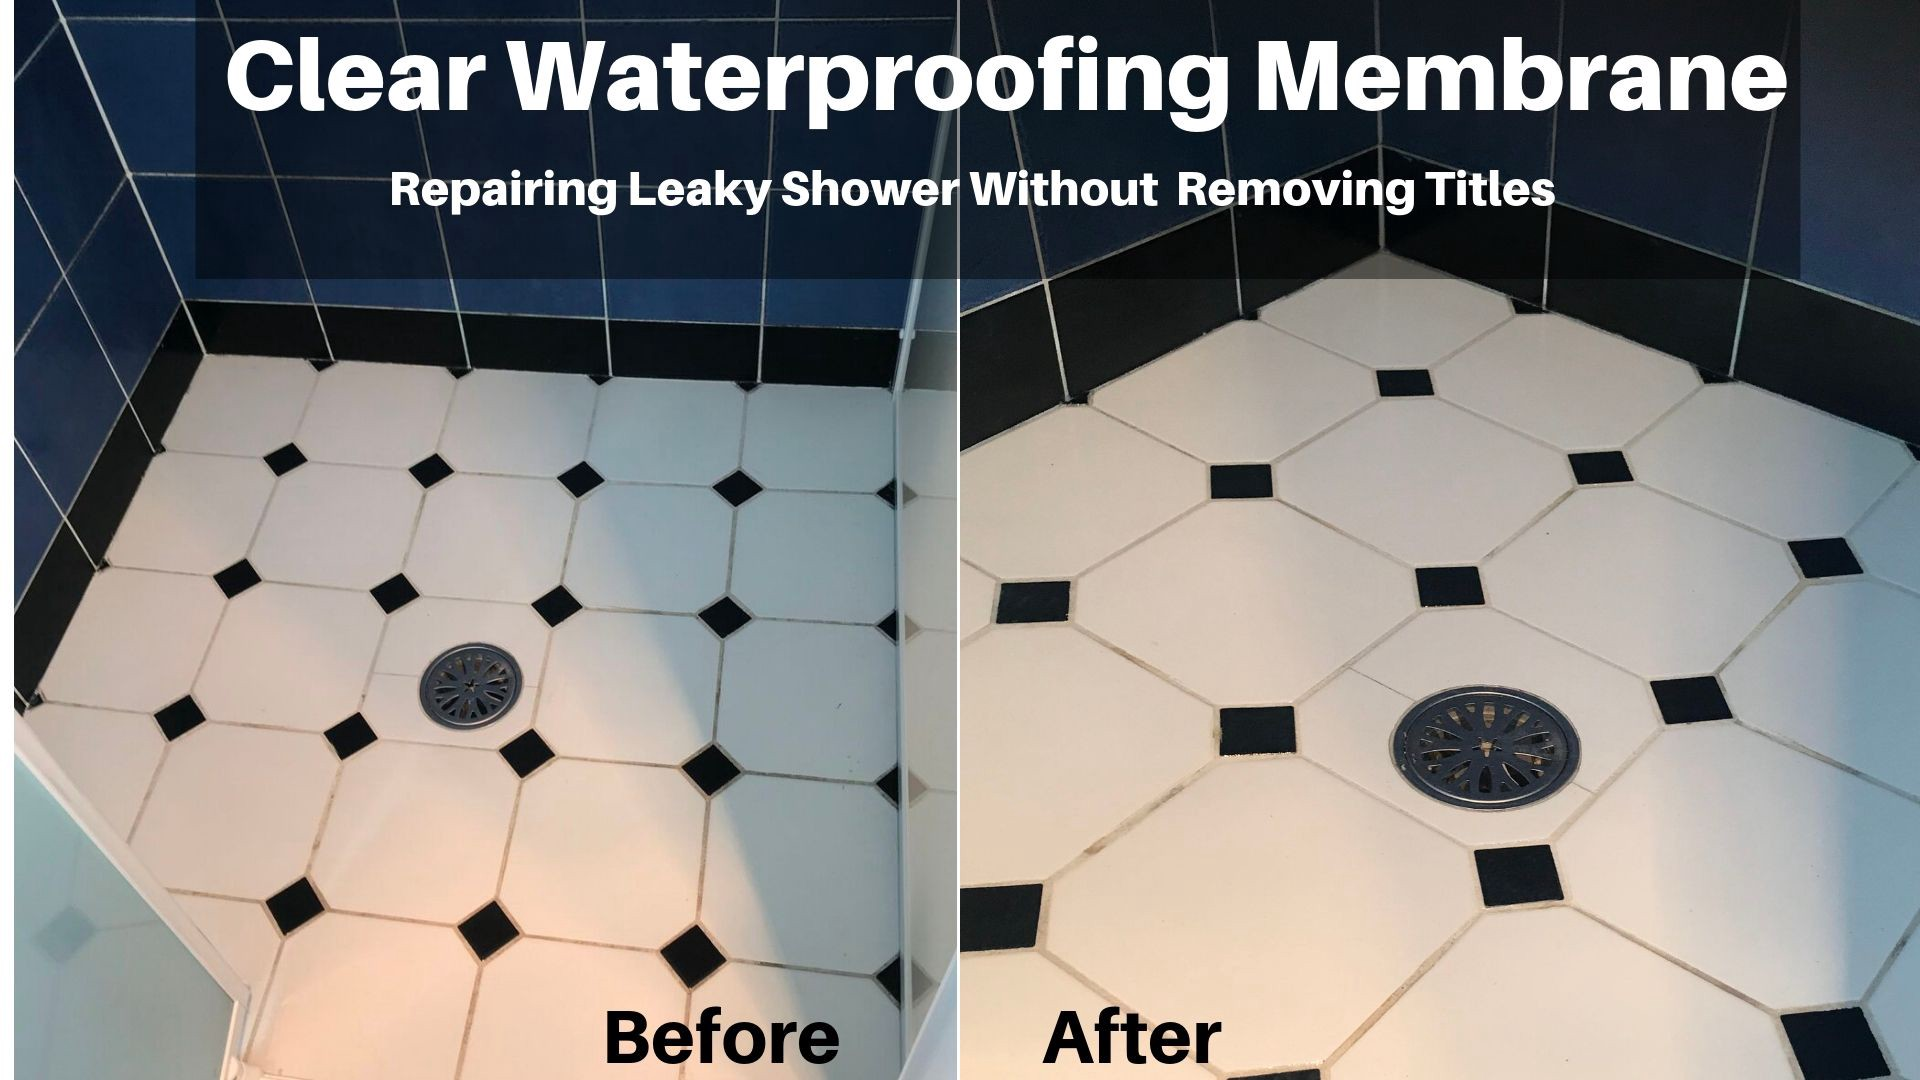 Leaky Shower Repair Tips Cracks Or Missing Grout In Your Shower By Remedial Membranes Medium